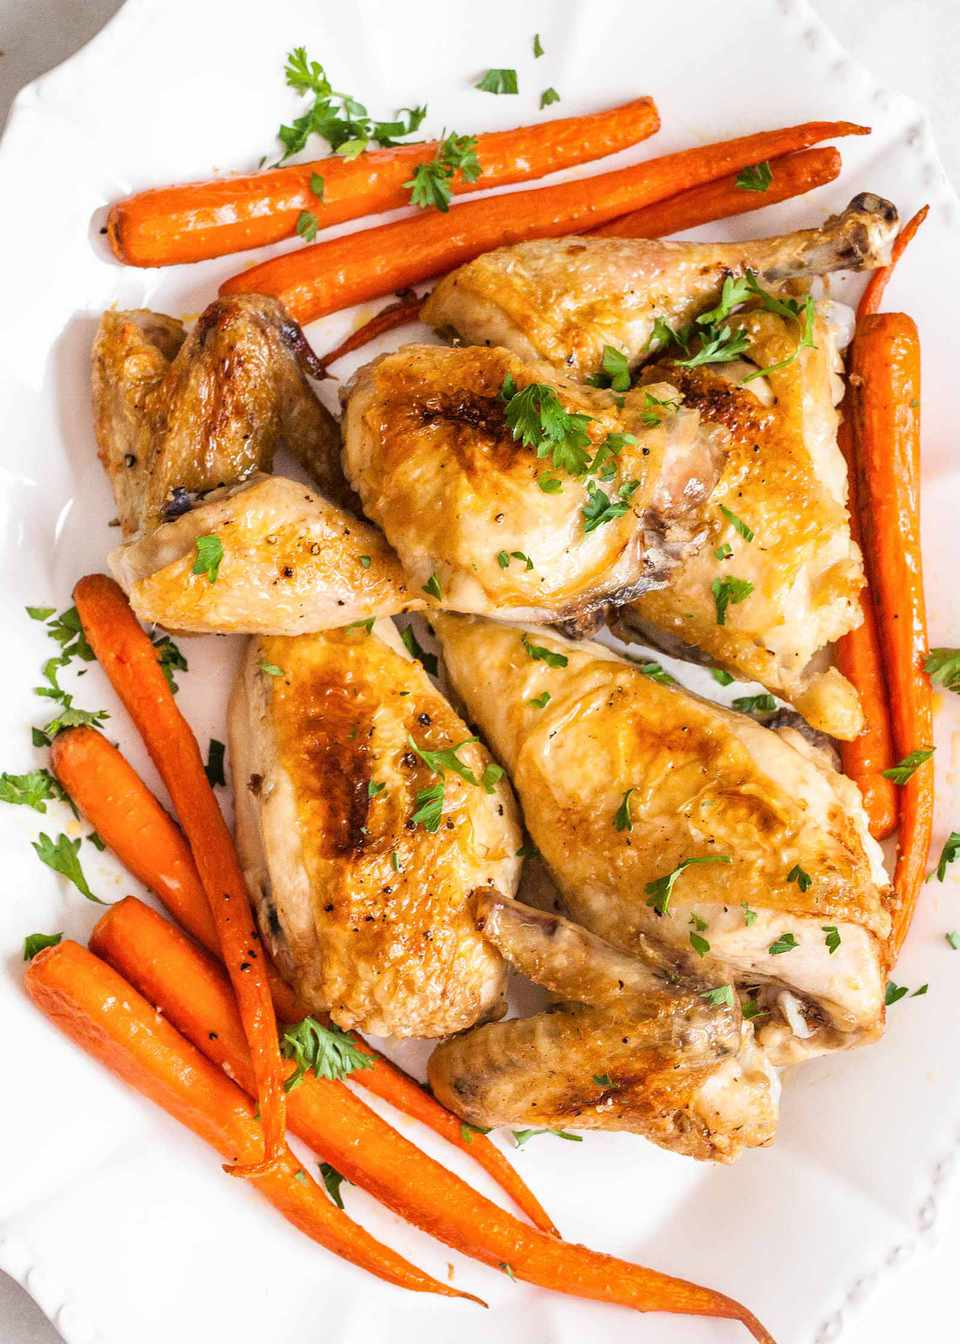 How to Make Chicken in the Oven Chicken cooked with carrots and herbs on white plate